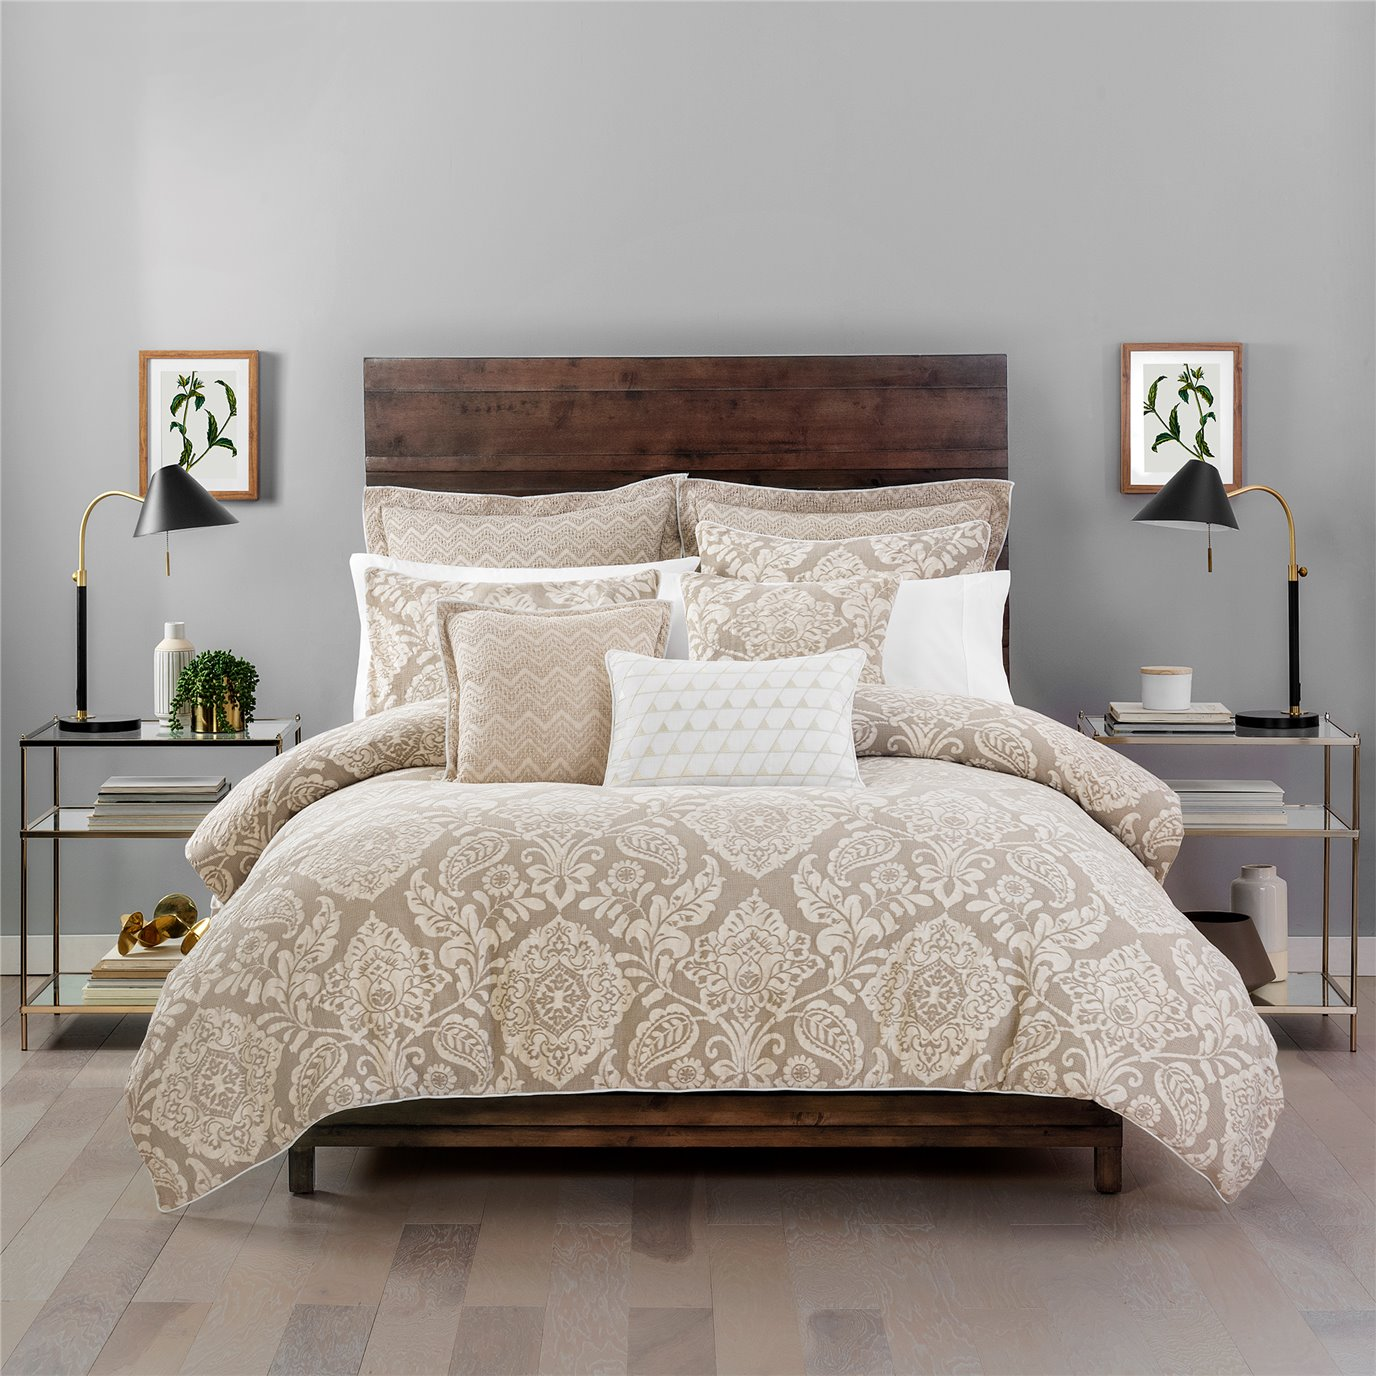 Croscill Grace Queen Comforter 3PC Set